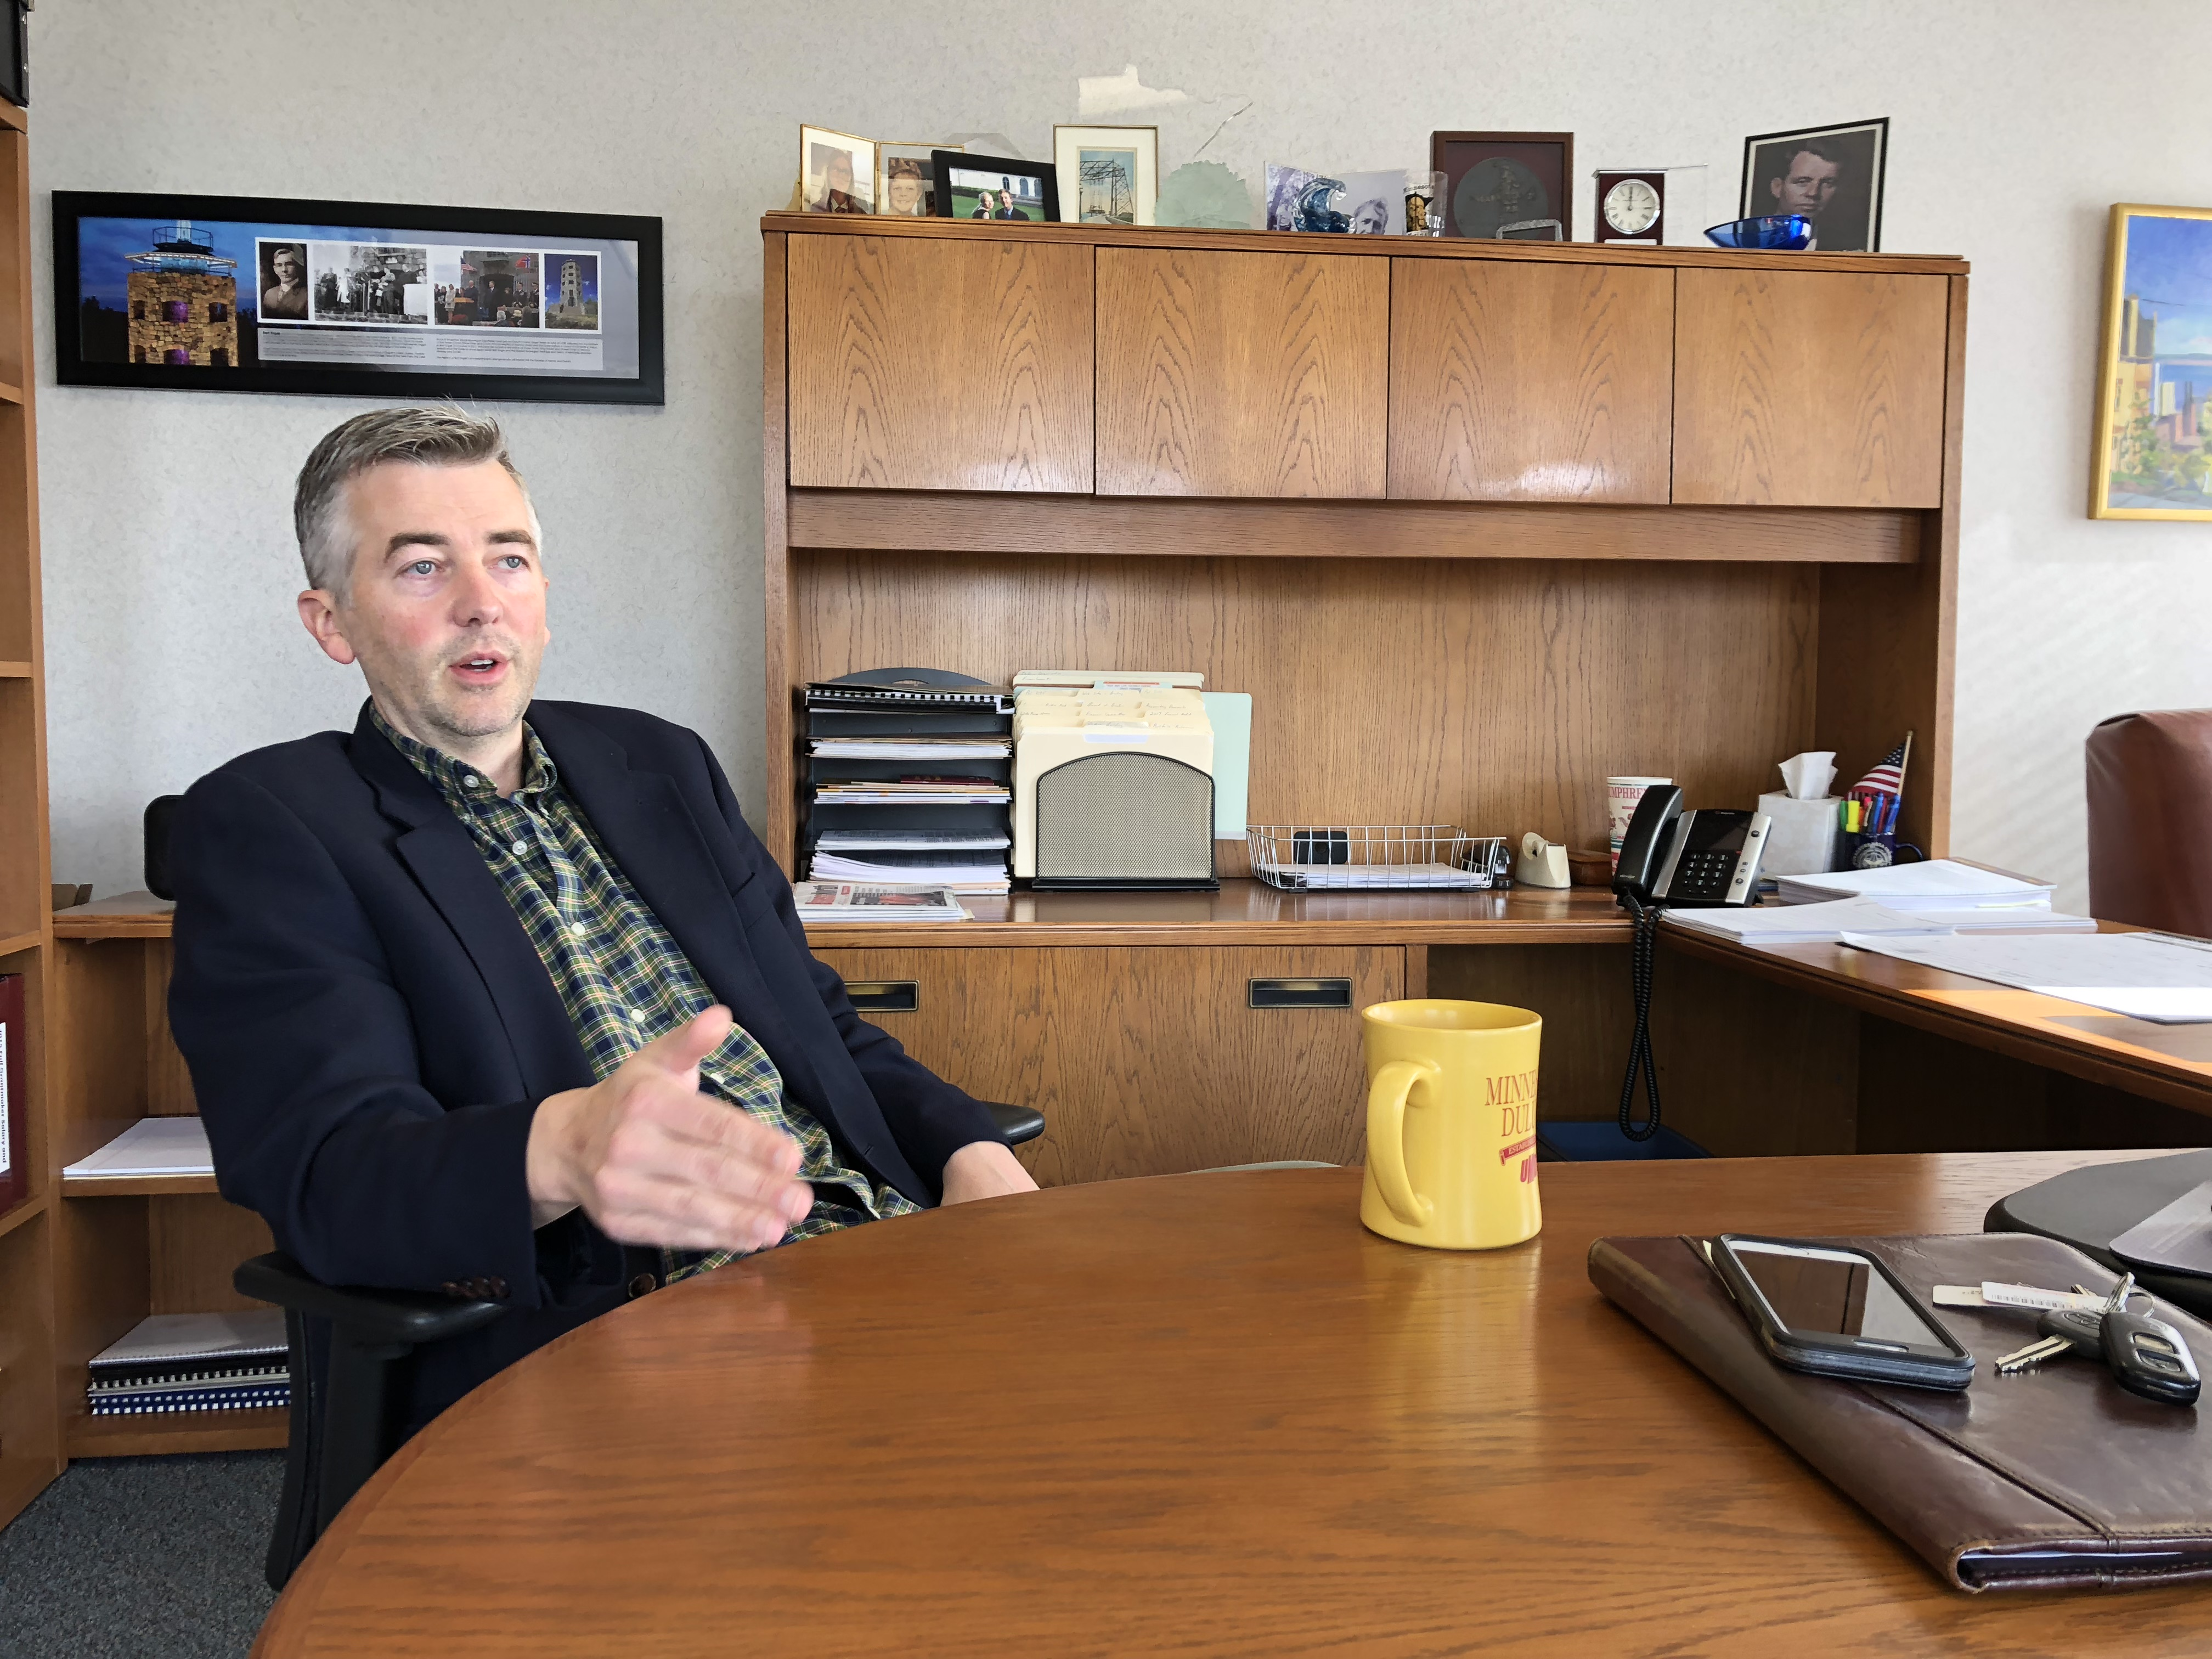 Don Ness, the former Democratic mayor of Duluth, Minn., speaks from his office in the city. Duluth is a liberal hub in Minnesota's Eighth Congressional district, one of the most competitive in the country.